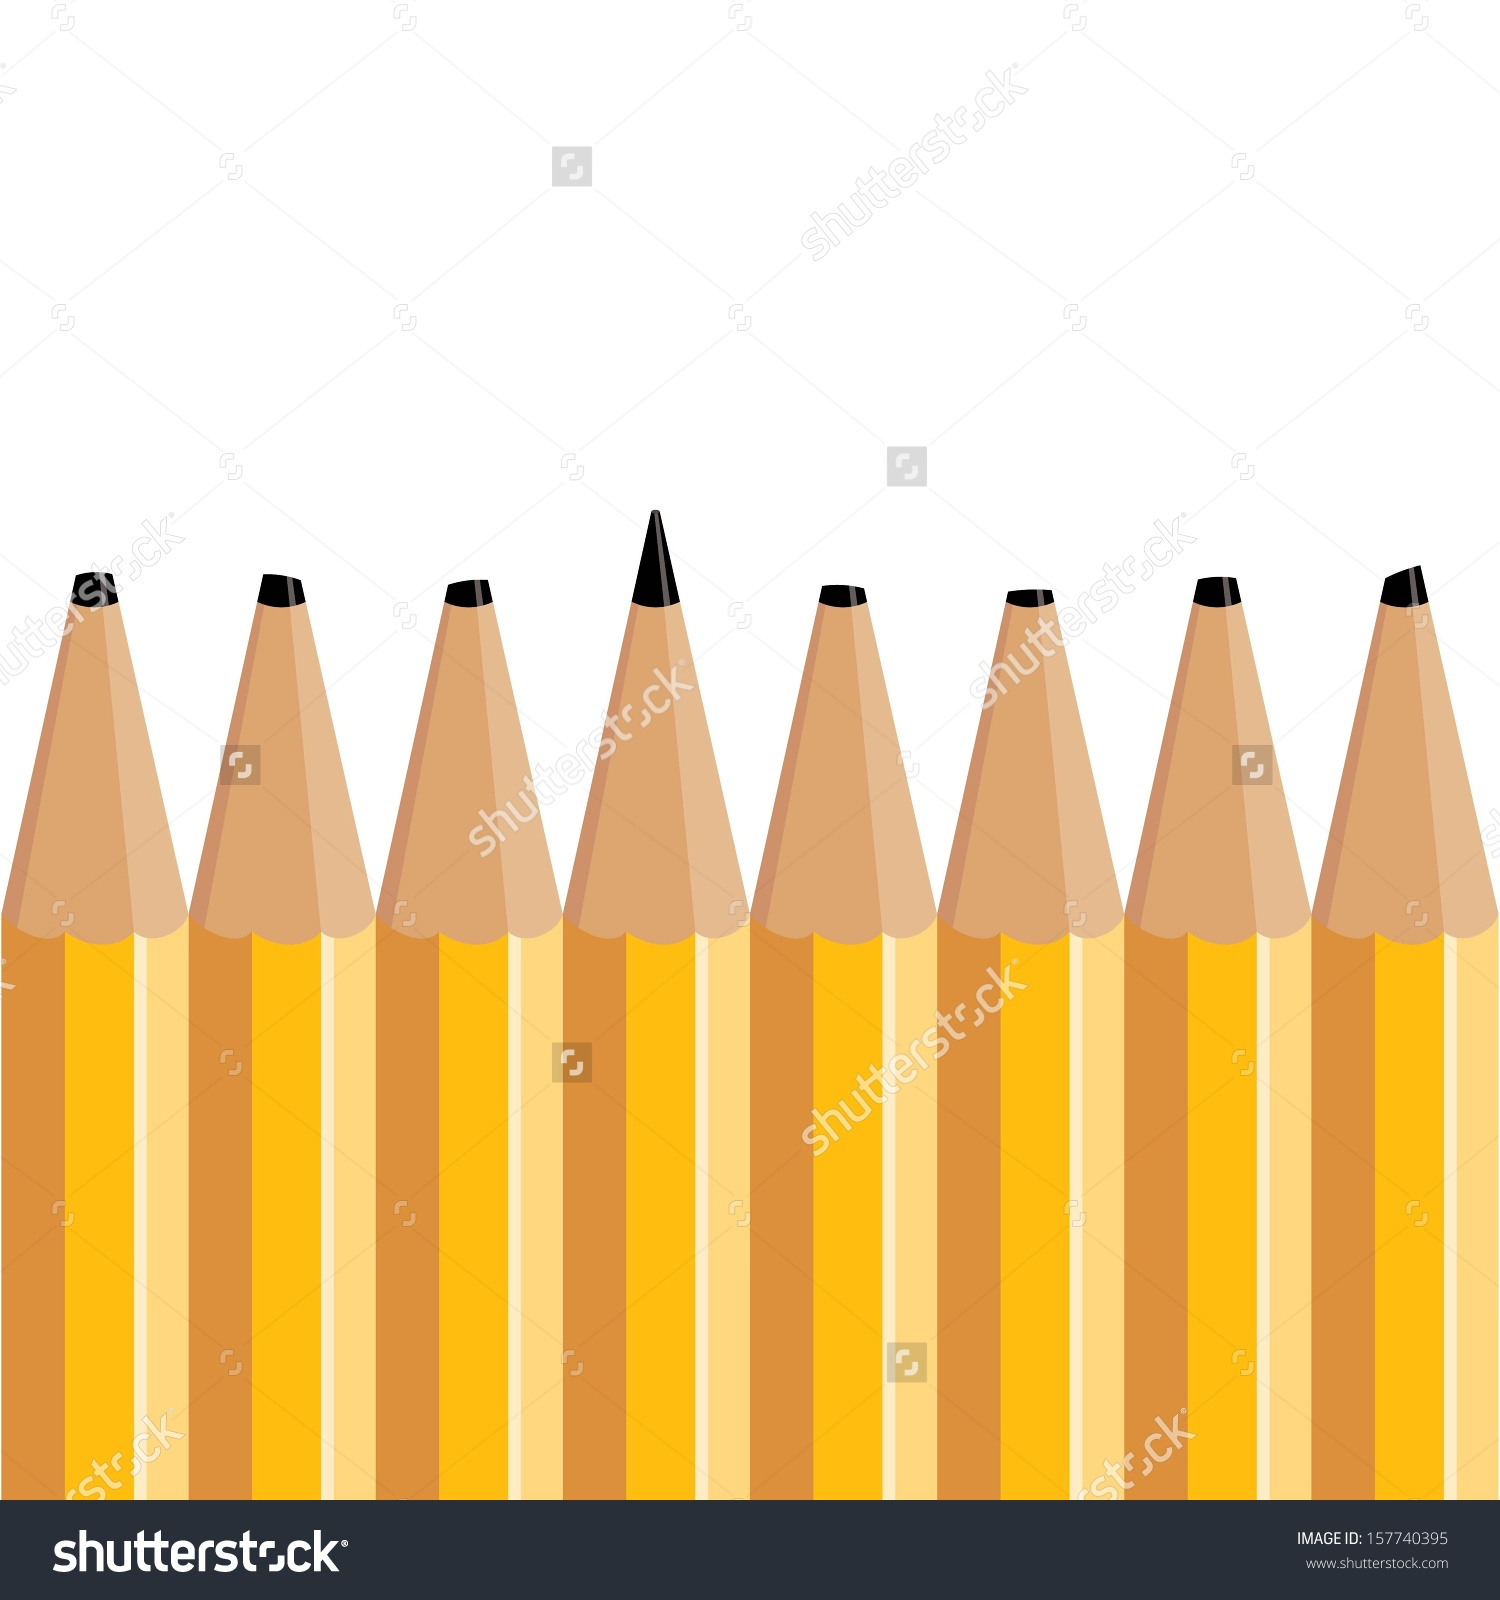 collection of pencil. Blunt clipart sharp